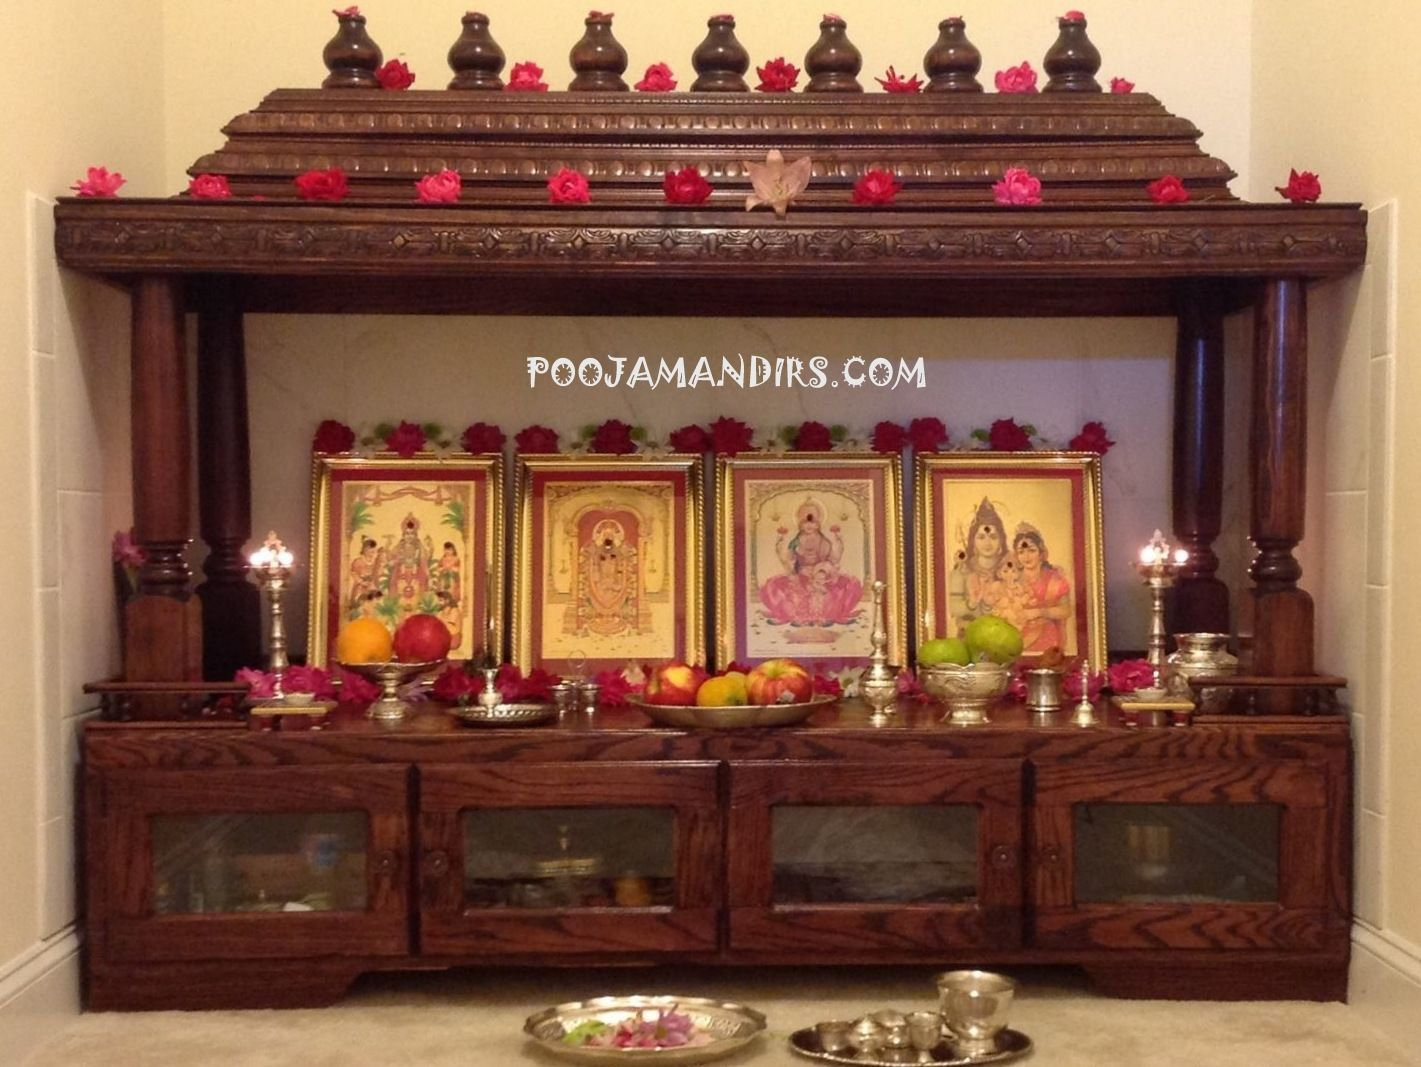 Pooja Mandirs Usa Chitra Collection Open Model Temple Design For Home Pooja Room Design Pooja Room Door Design